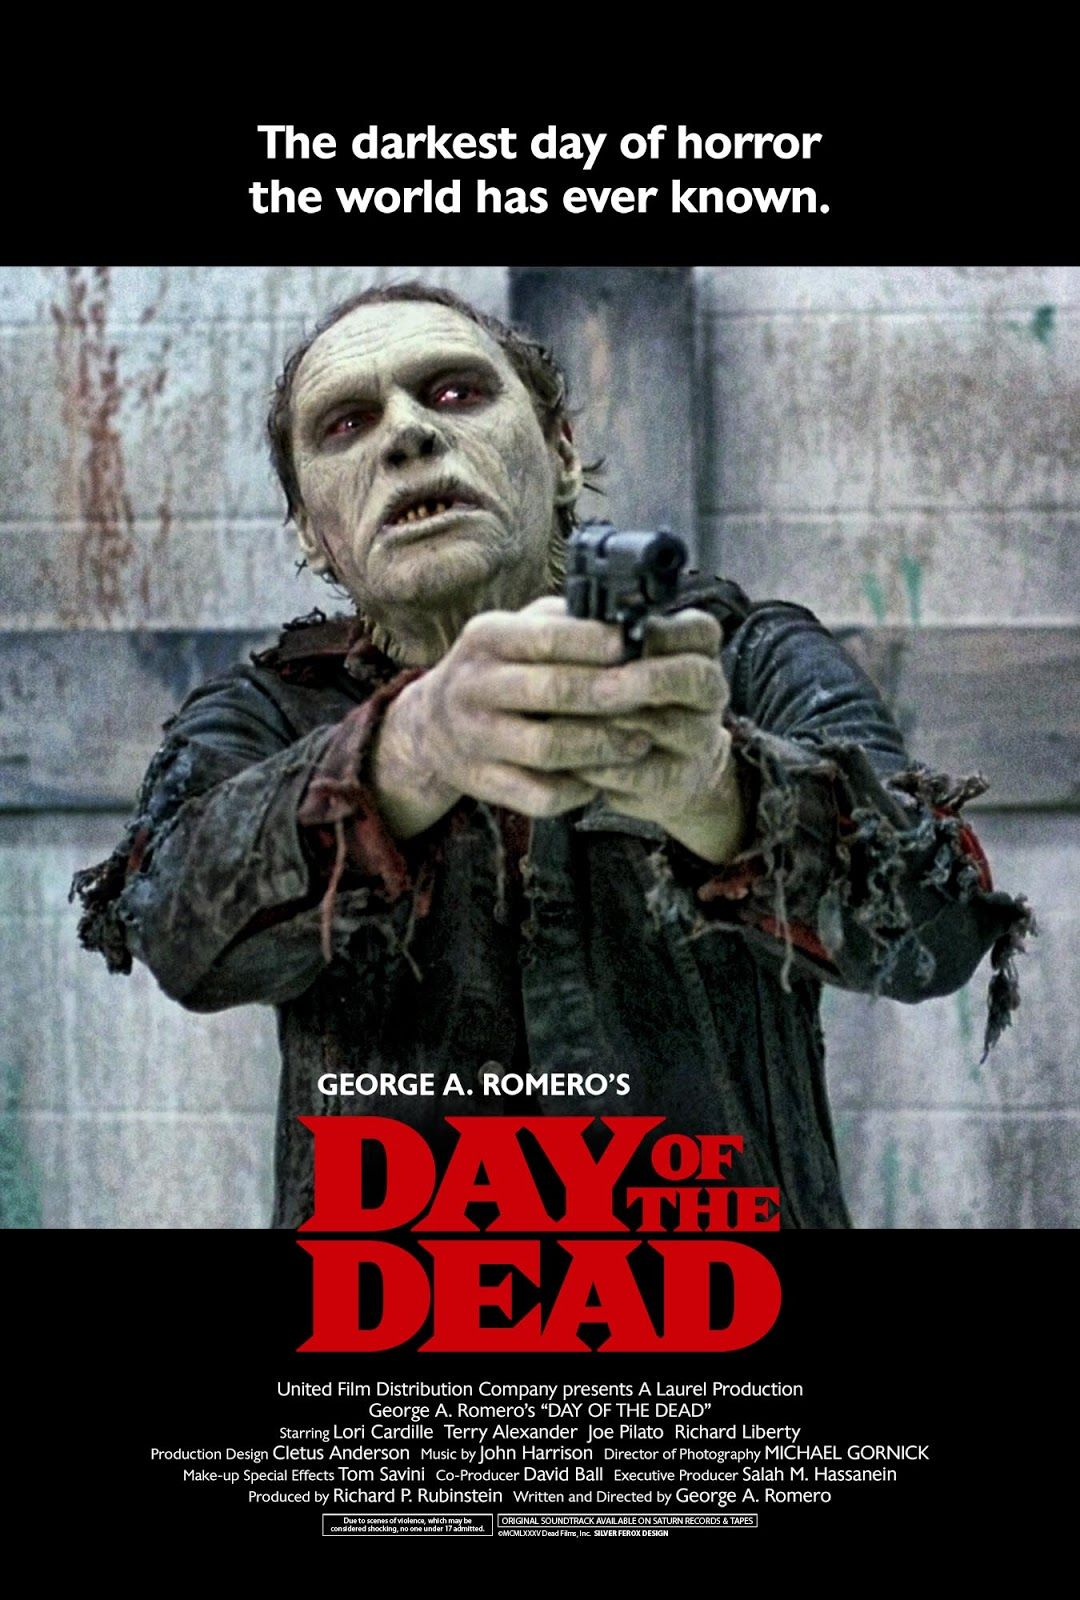 DAY OF THE DEAD Film distribution